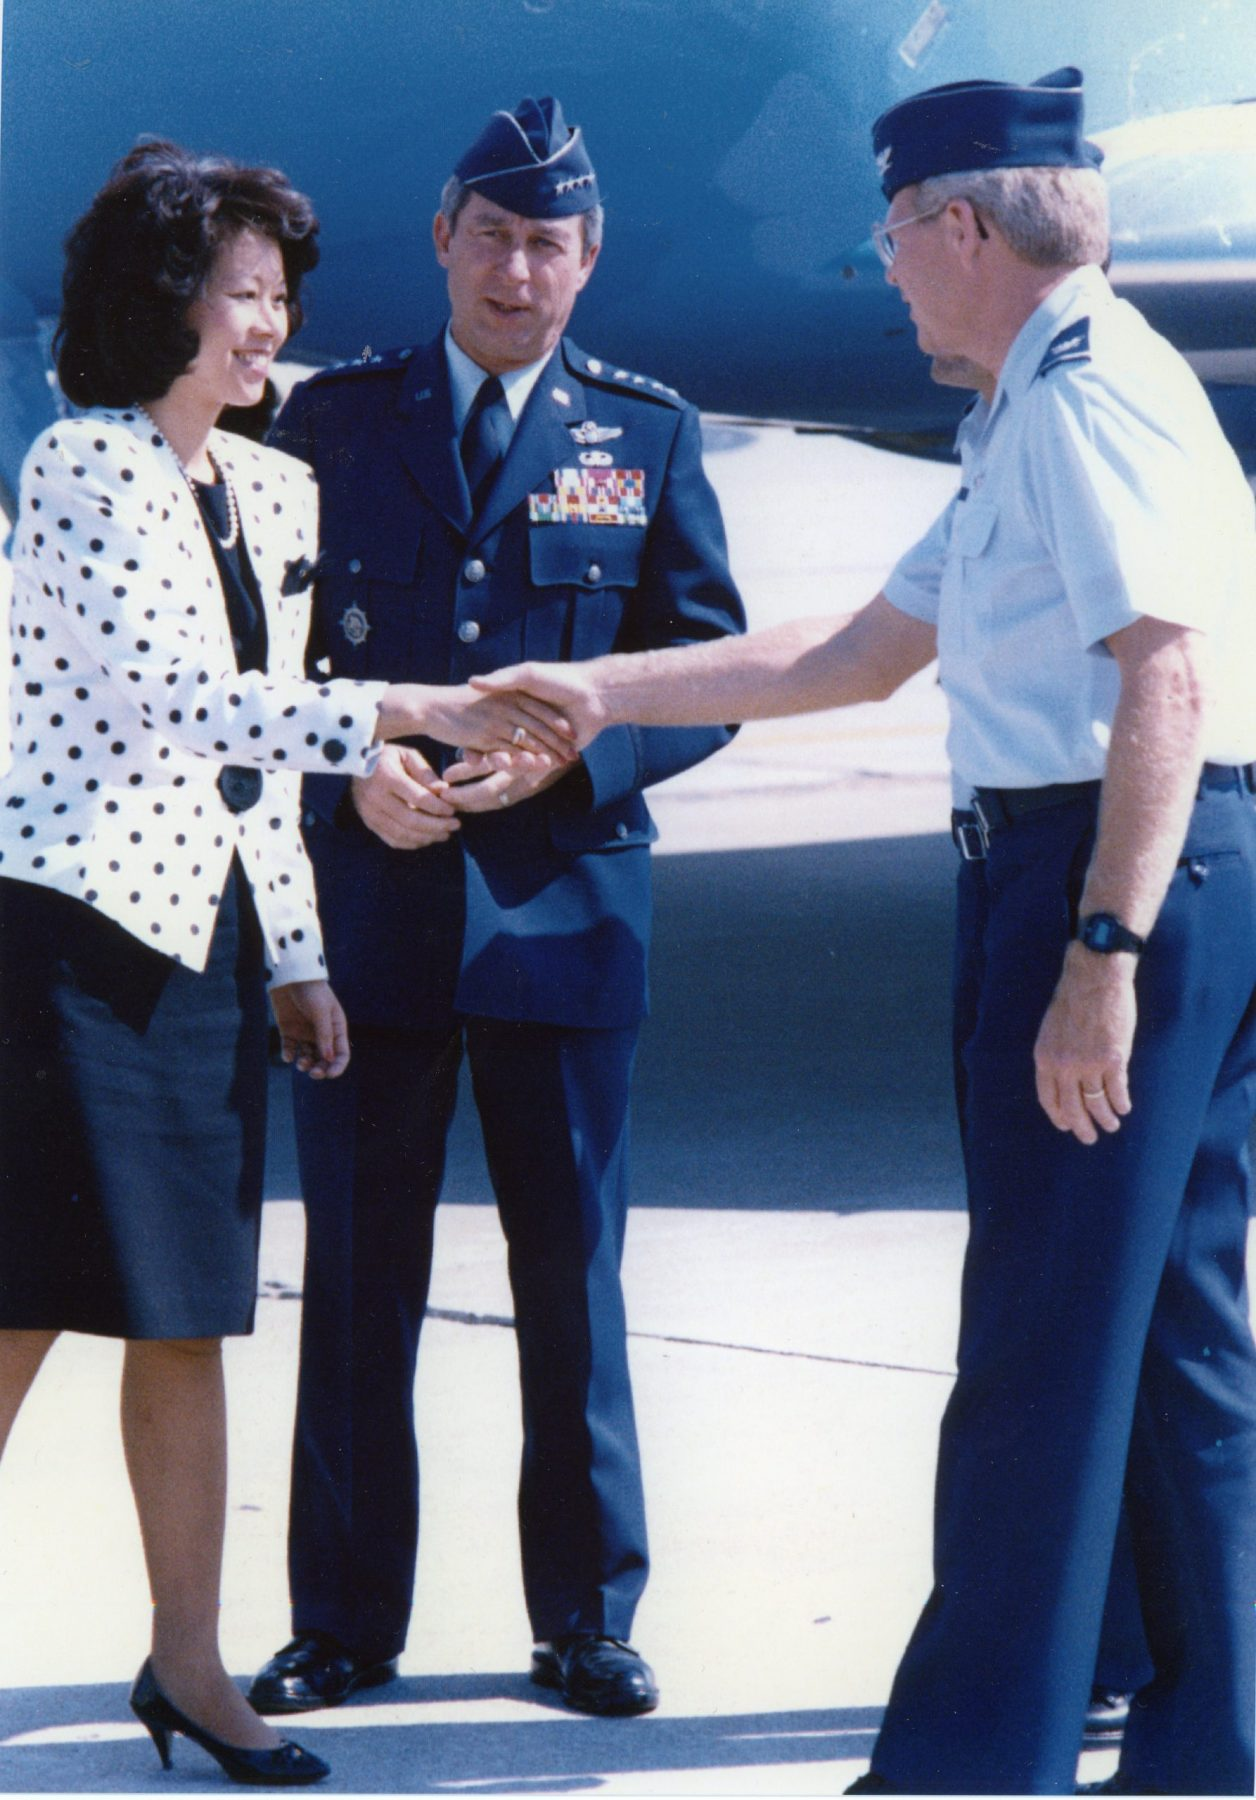 U.S. Deputy Secretary of Transportation Elaine Chao visiting headquarters of U.S. Transportation Command. Scott Air Force Base, Illinois.